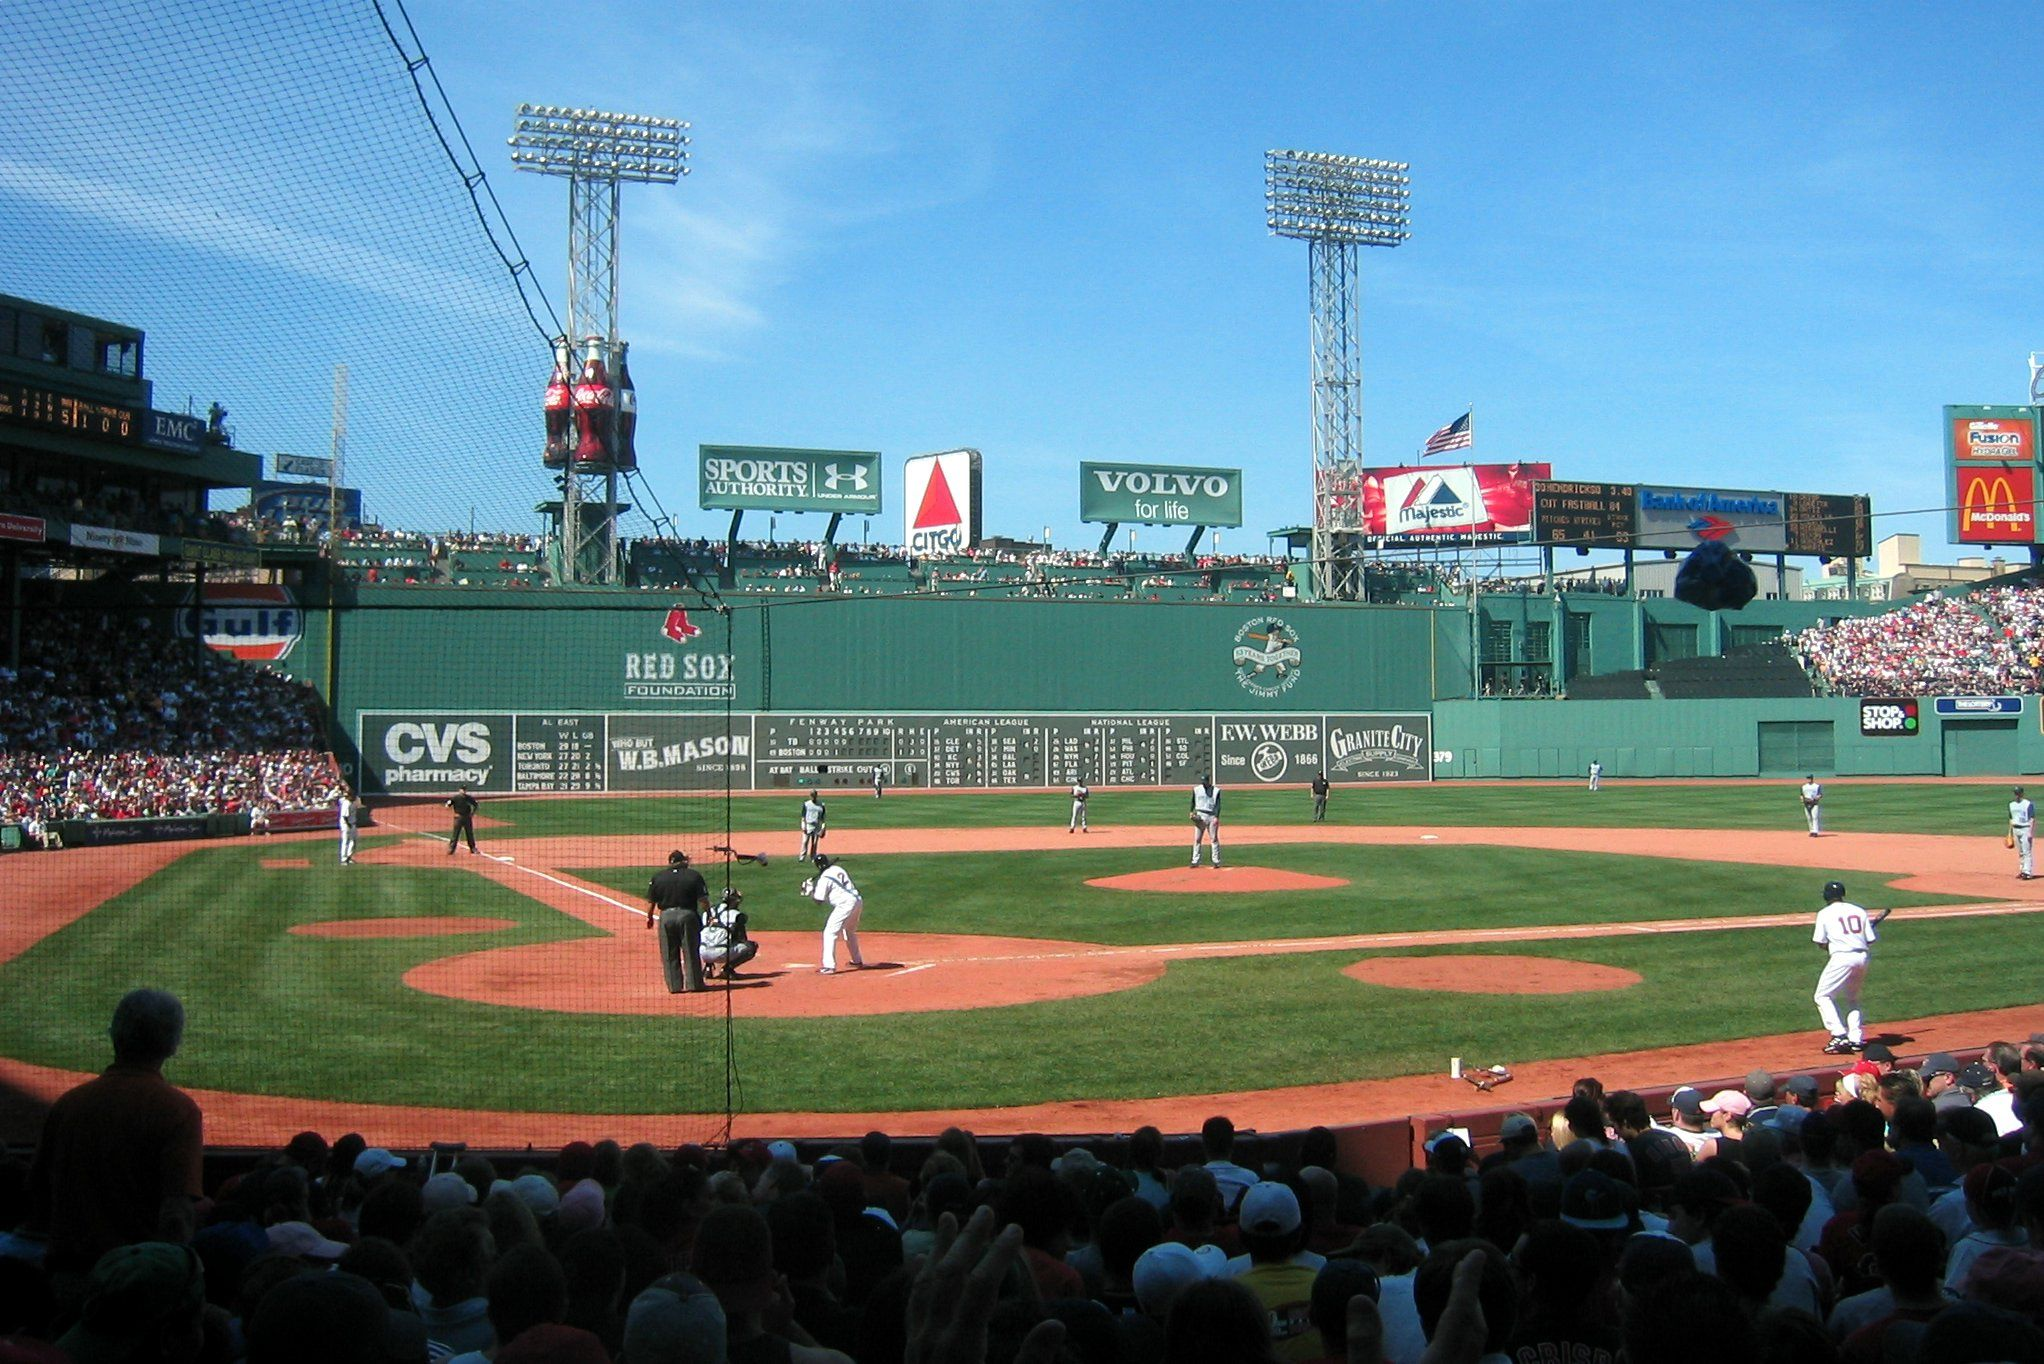 Fenway Park With The Green Monster And Citgo Sign In Shot